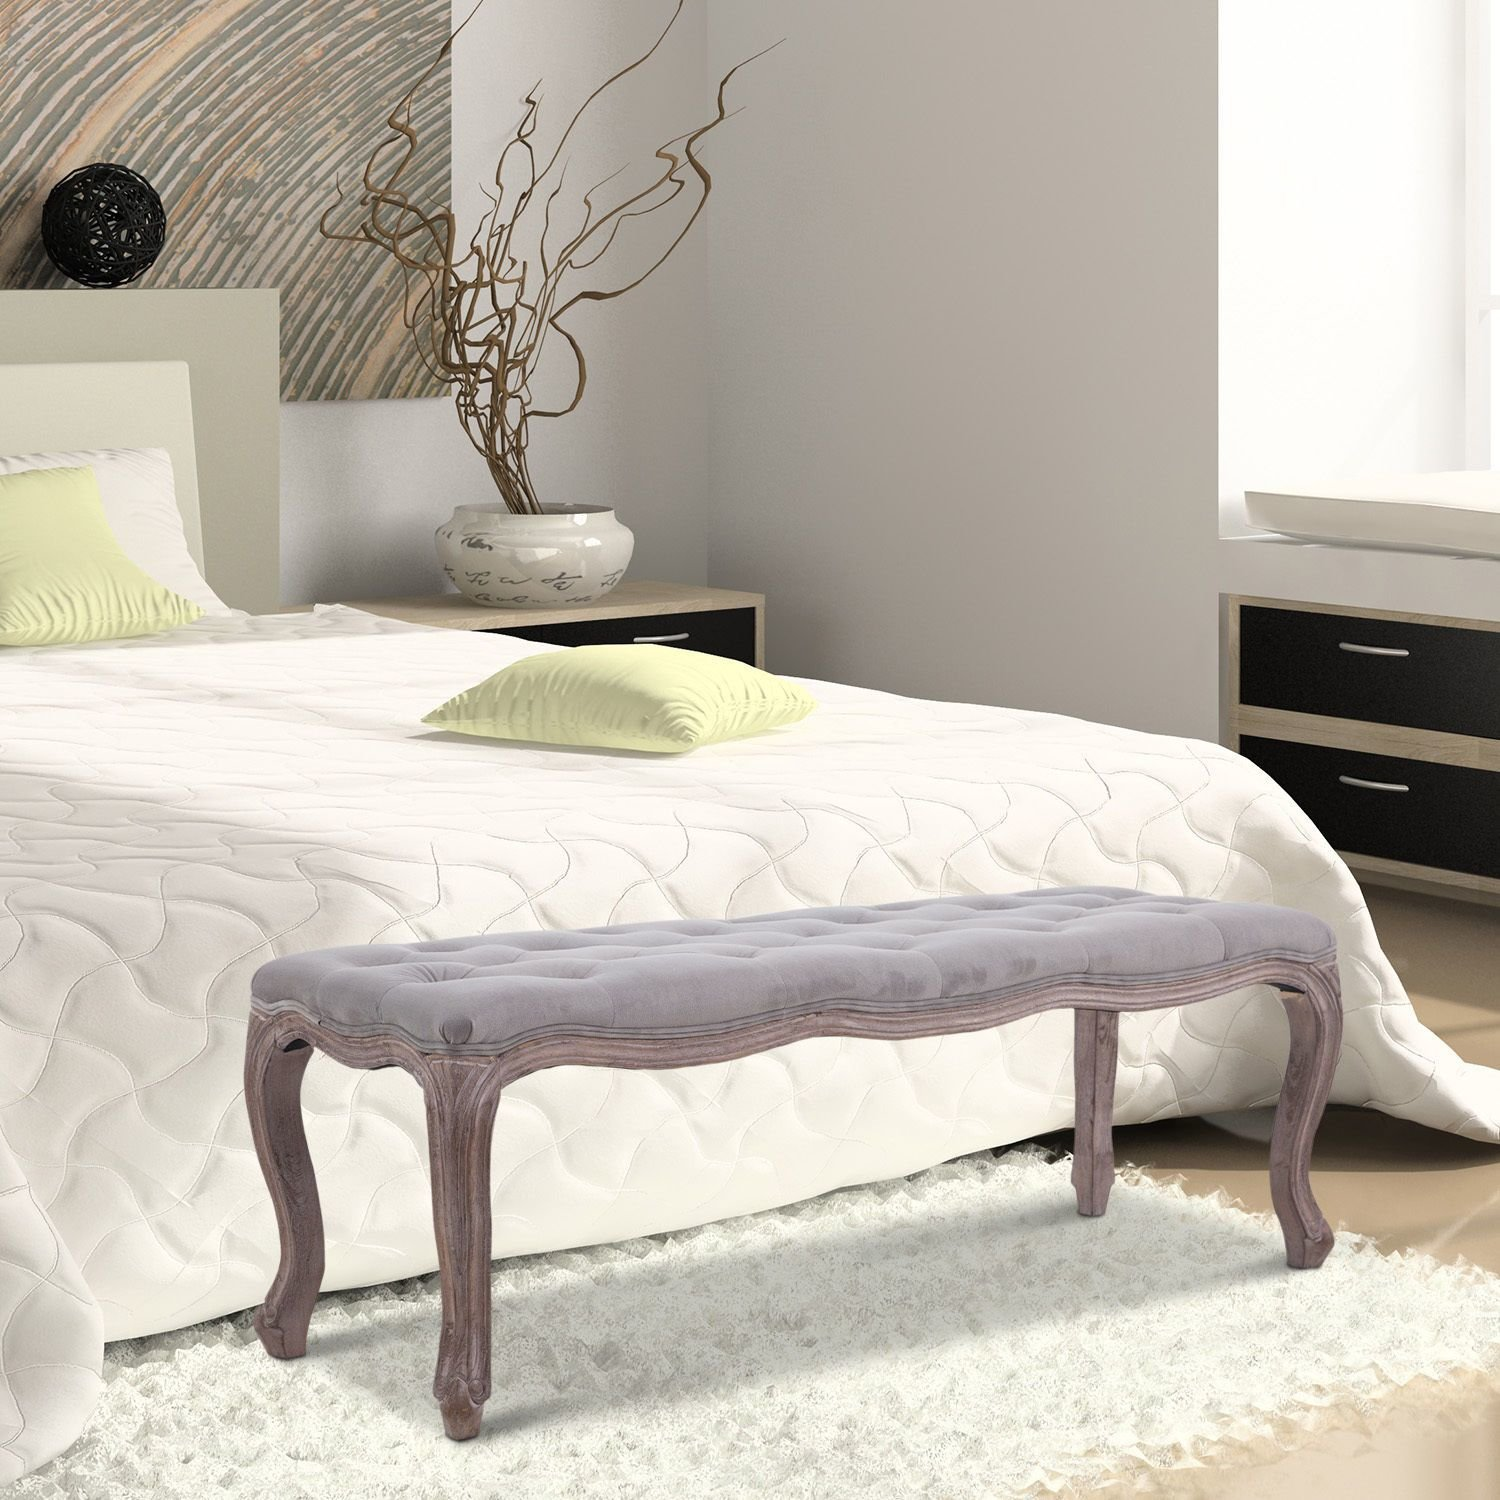 Best Upholstered Bench Tufted End Of Bed Seat Ottoman Wood Bedroom Entryway Furniture Ebay With Pictures